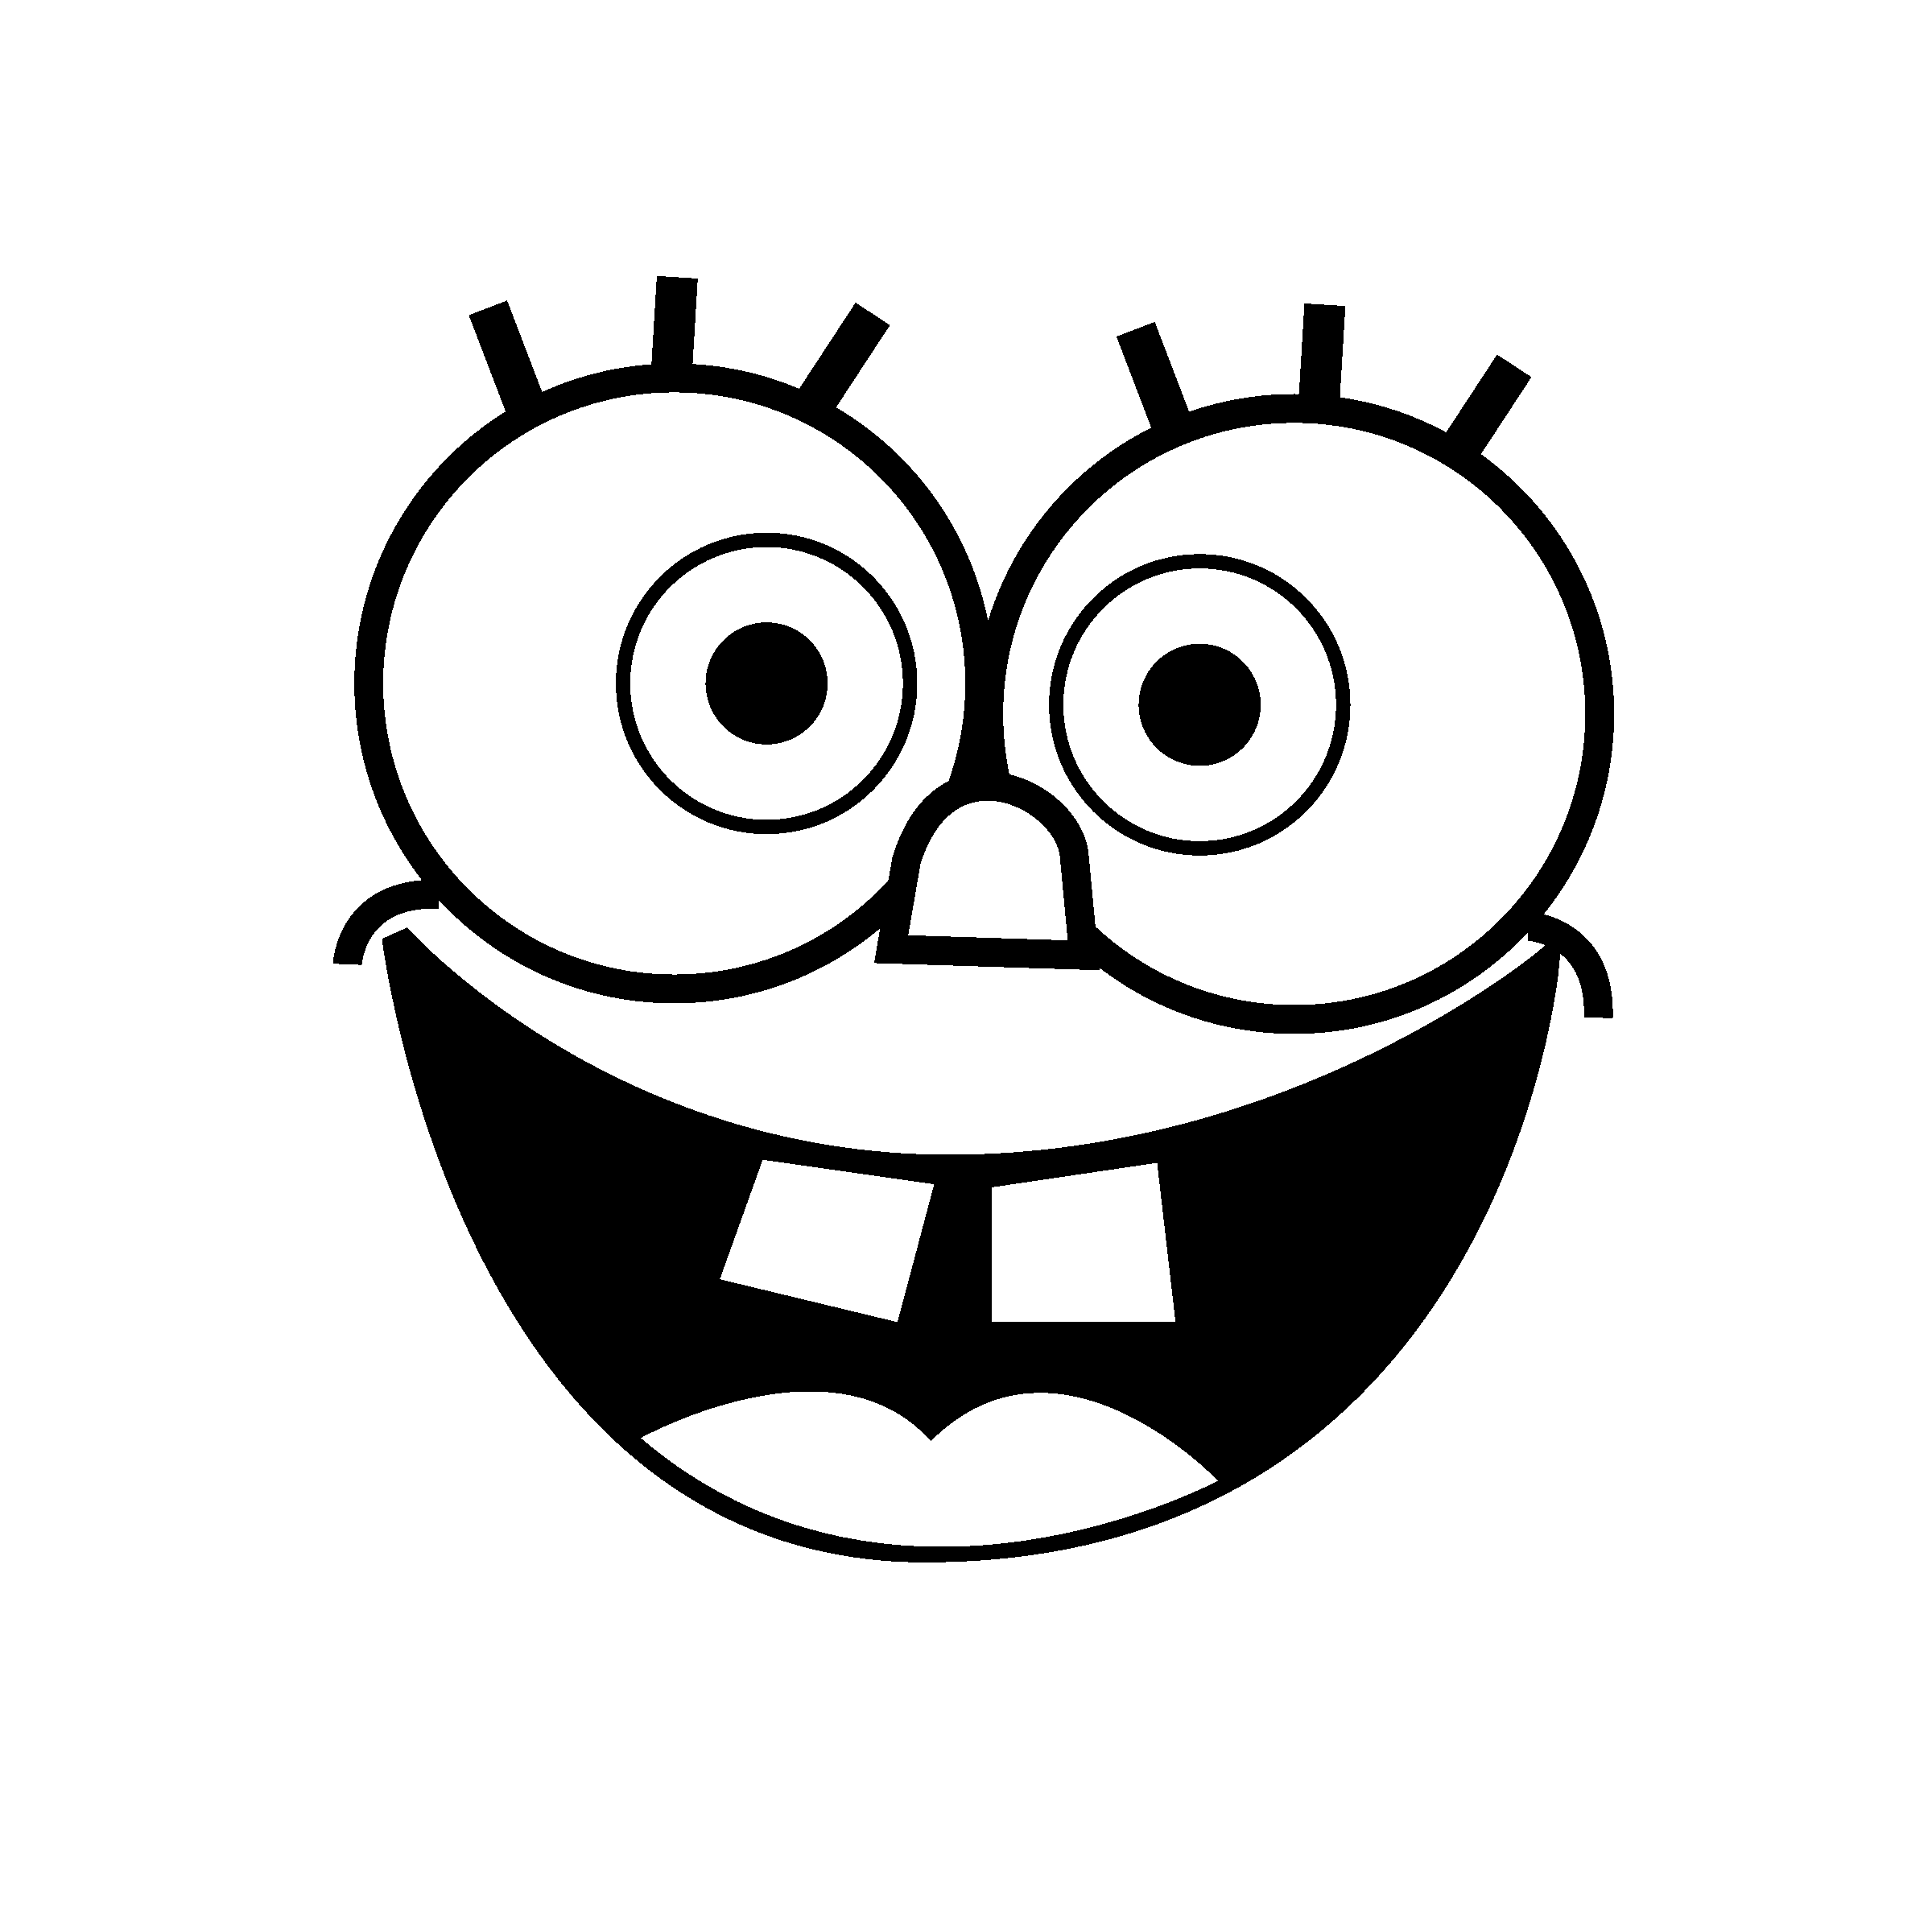 spongebob black and white excited spongebob coloring pages in 2020 with images and spongebob black white